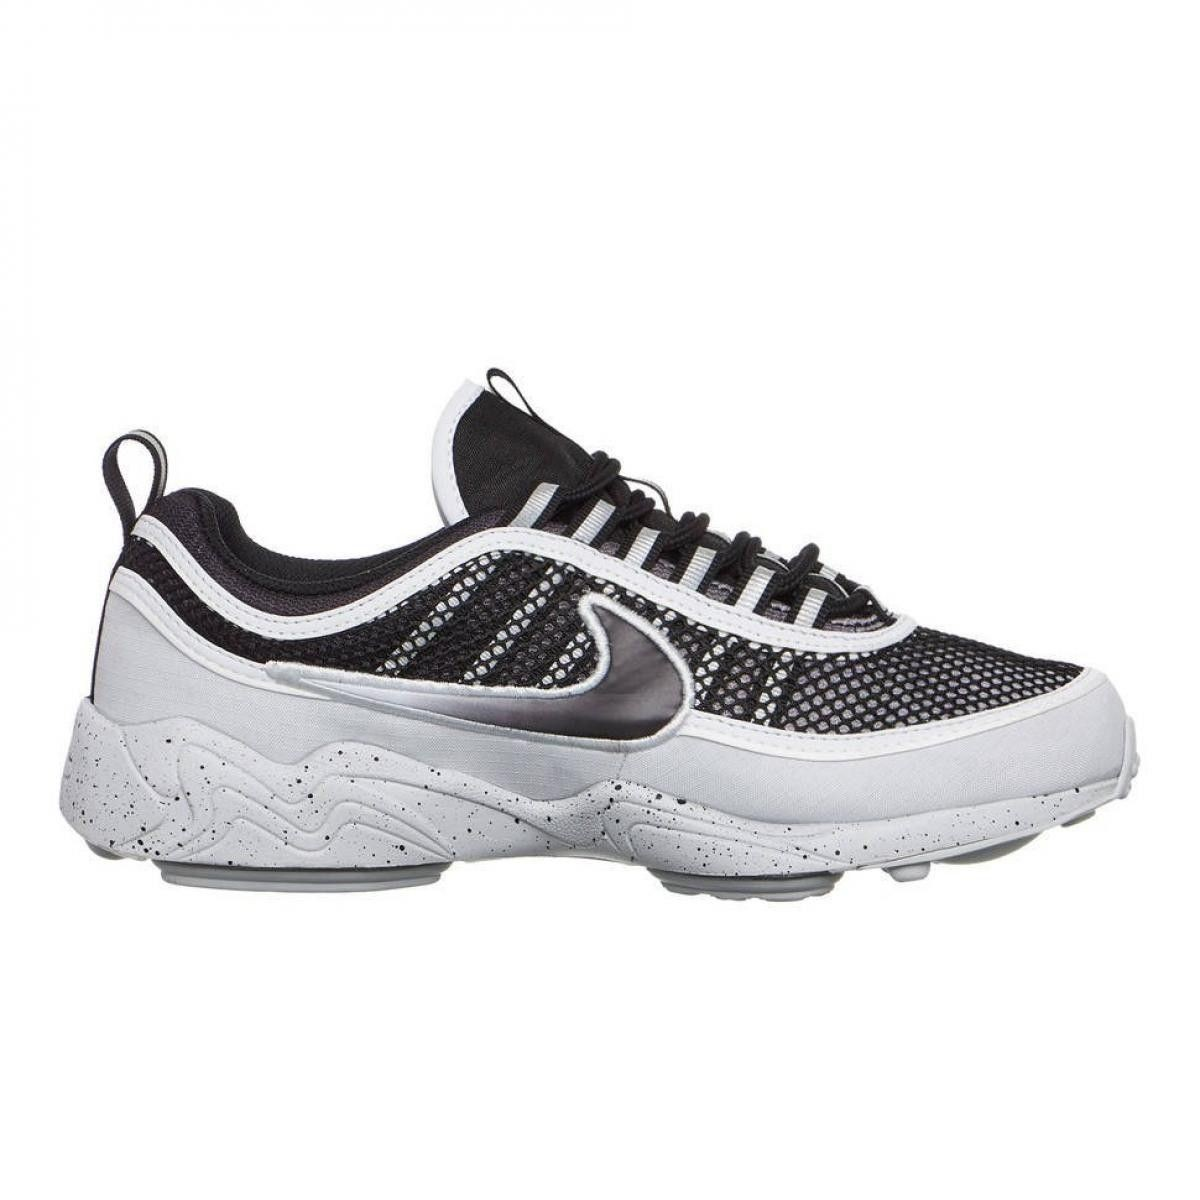 16 Basket En 004 926955 Zoom Nike Air Spiridon Products 2018 wIPrIRq4